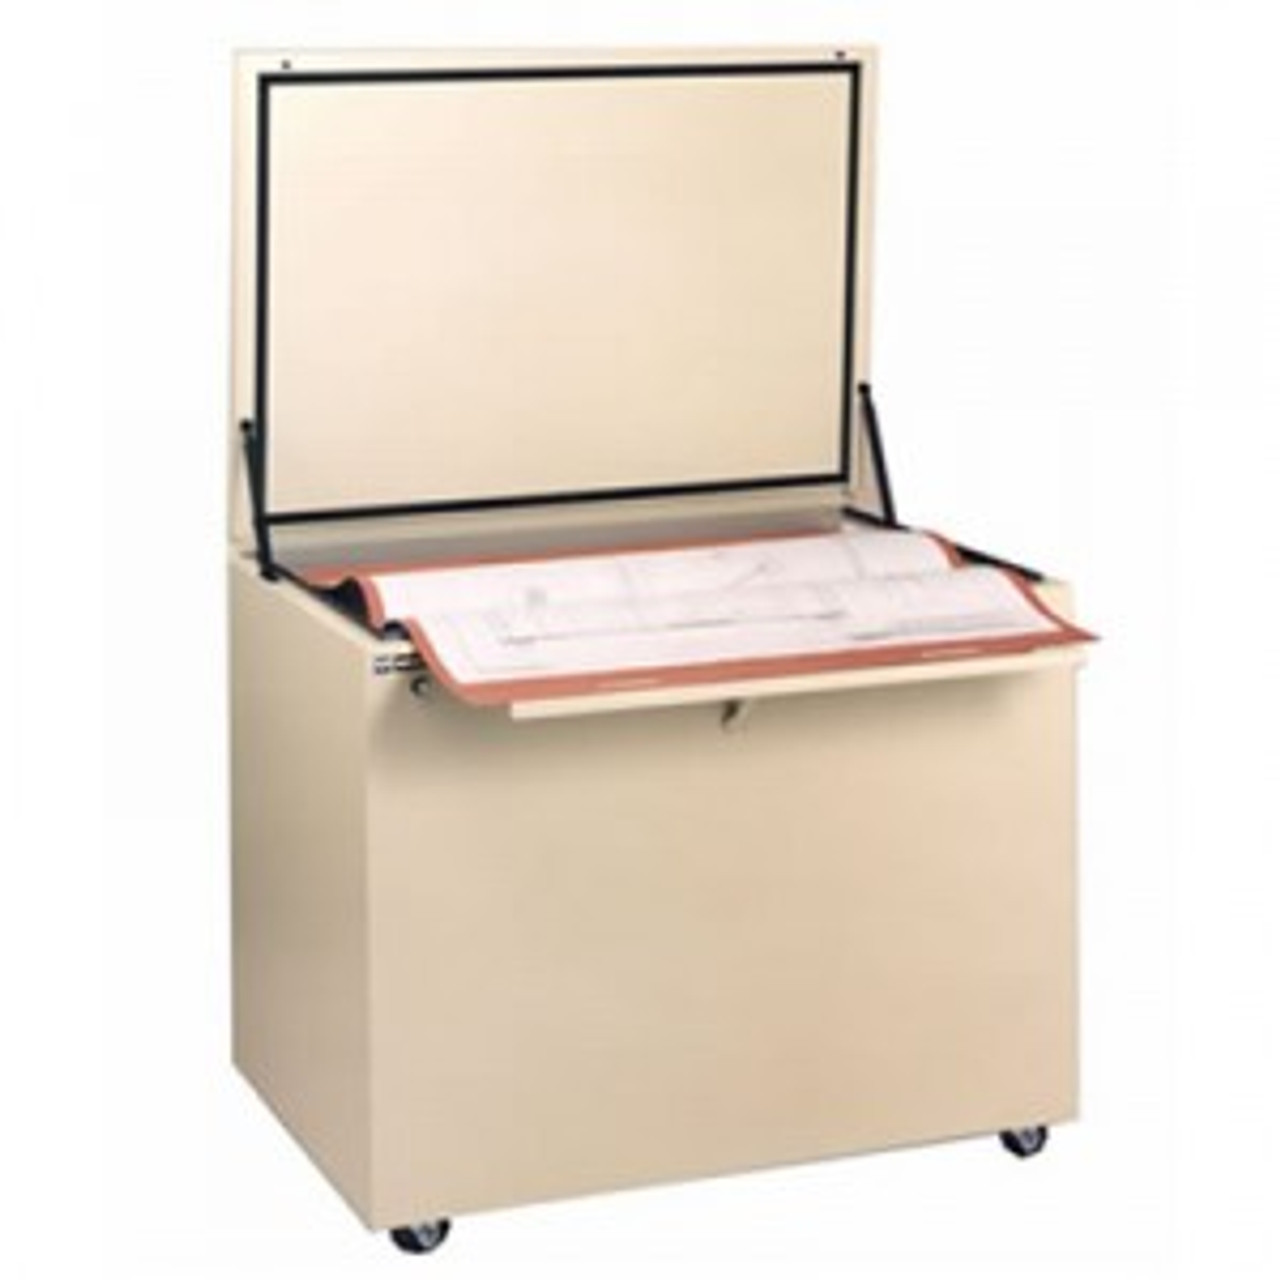 This blueprint file cabinet is perfect for map storage and Blueprint filing. Replaces 6 flat file cabinets in one third the floor space.